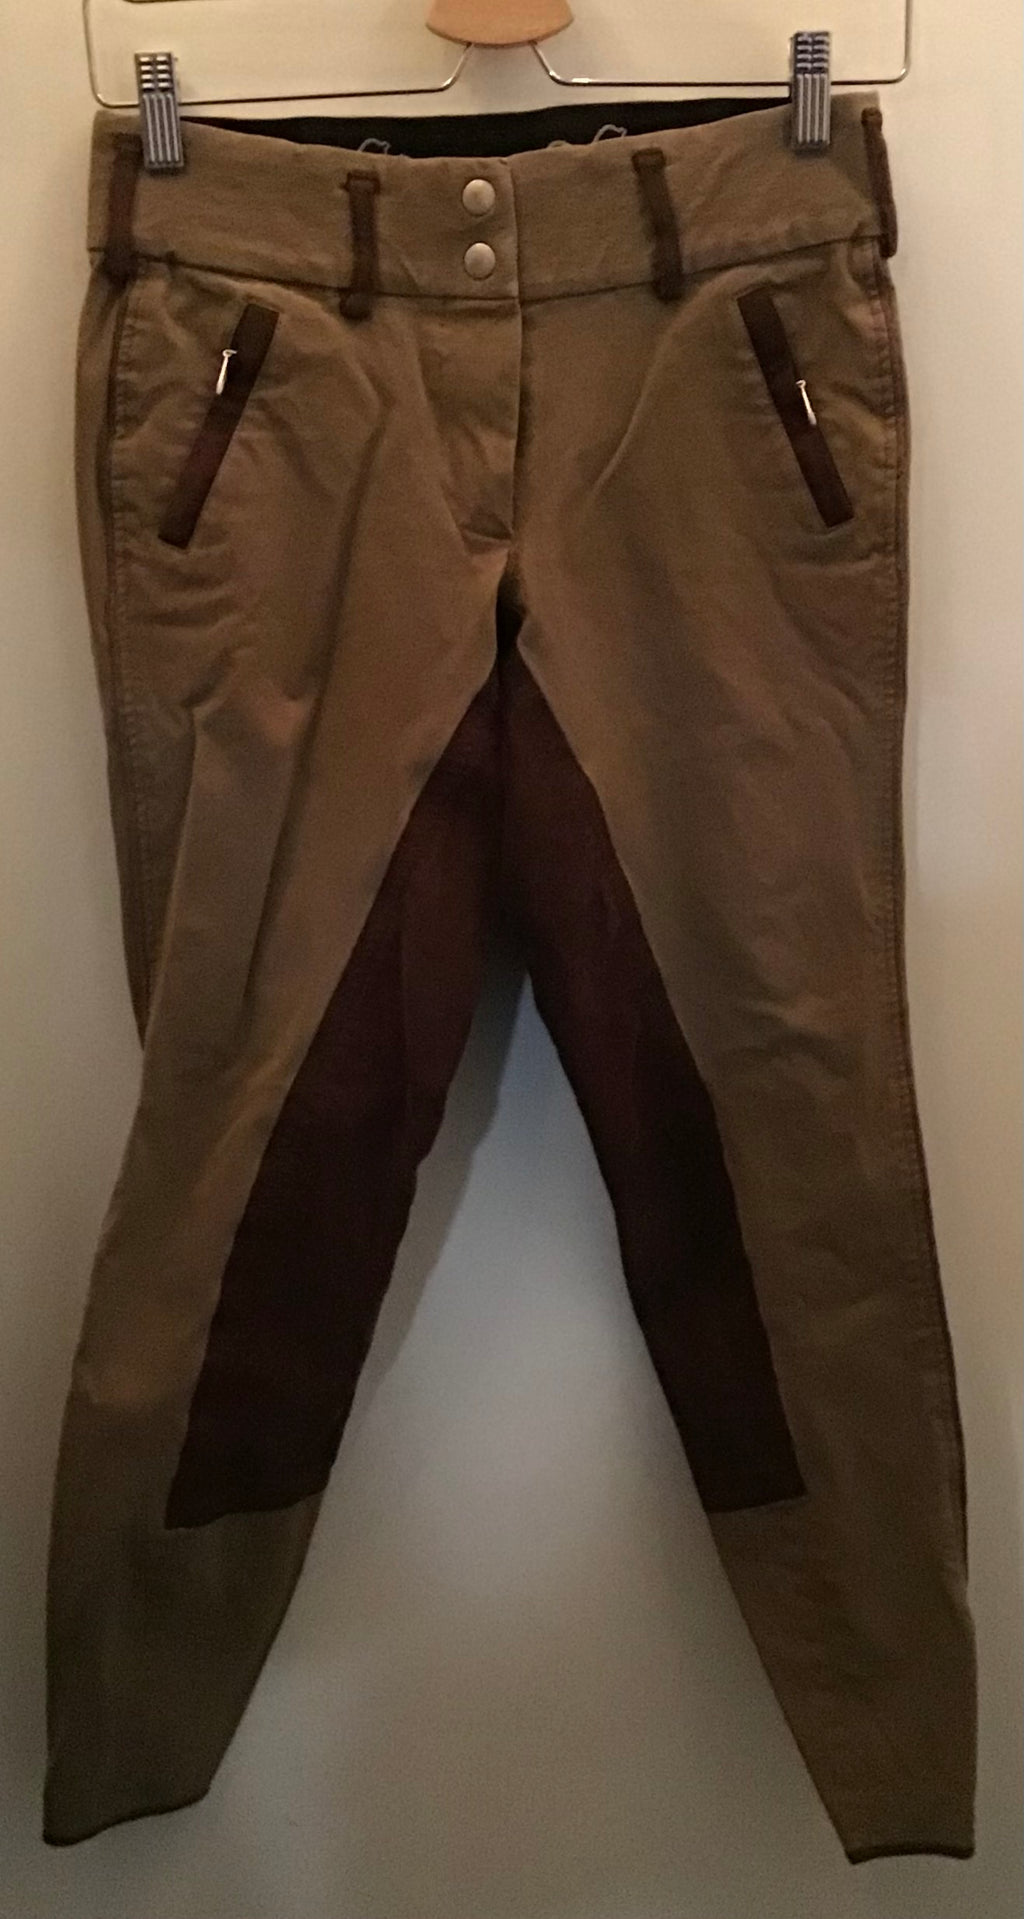 Goode Rider full seat breeches 26R